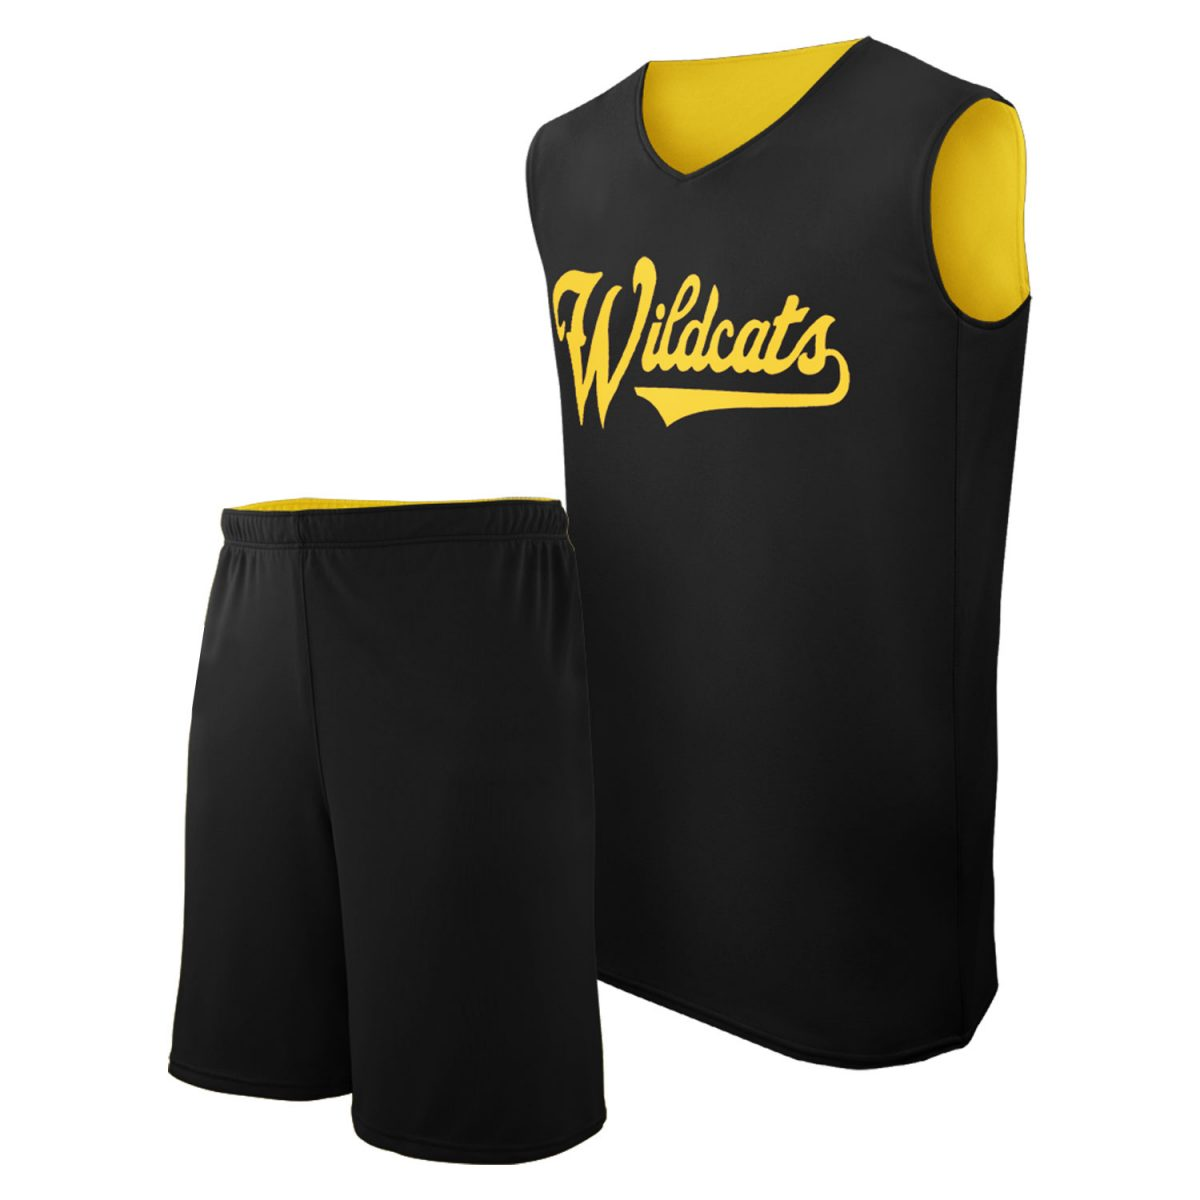 Boys Basketball Uniforms Manufacturers in Srinagar